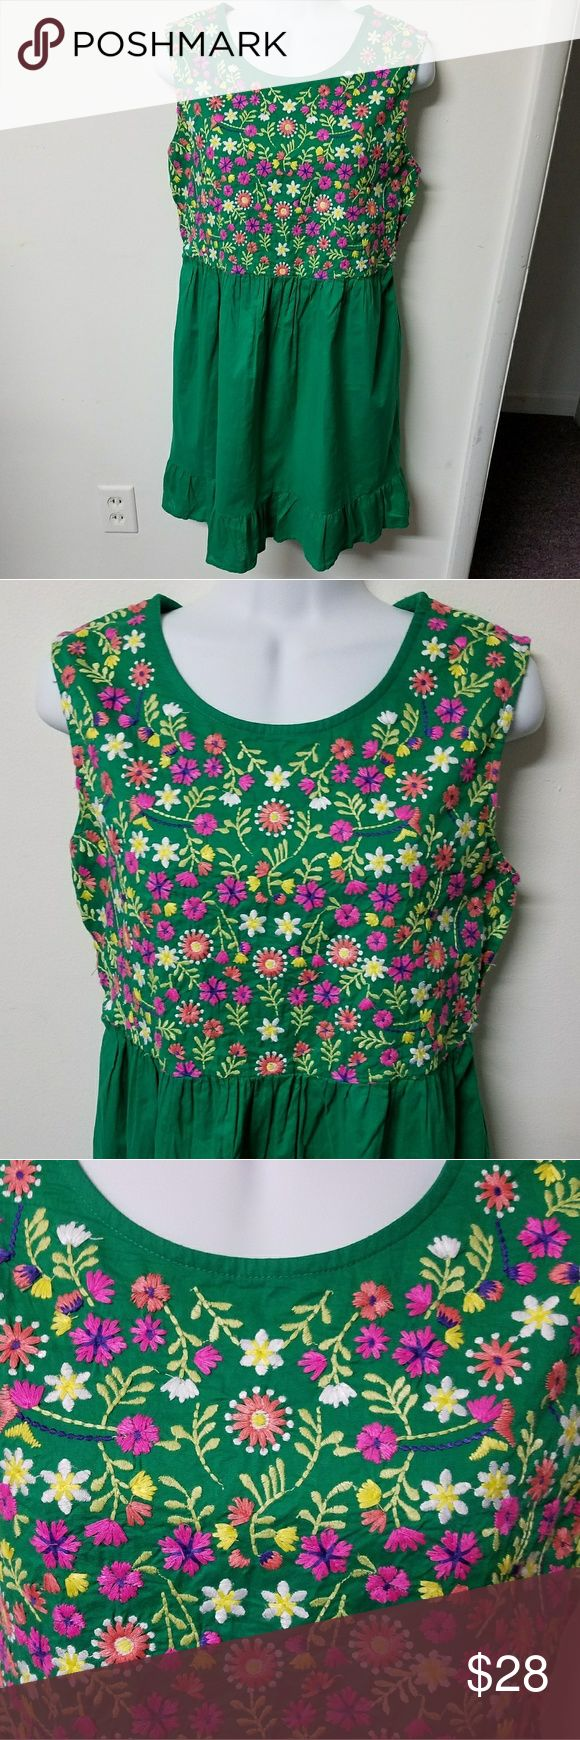 ADORABLE Green VINTAGE Floral Cotton dress GUC Up for sale is a Super CUTE Cherokee brand Green and Pink Floral dress. It is in great condition, no flaws. Tagged a girls XL, but should fit juniors medium and women's XS-S. 100% Cotton. SO wish I was this size ha! Super cute pin up/ hippie vibes!   17 inches pit to pit, 33 inches long.   Thanks for looking and please ask any questions!! ❤❤ Cherokee Dresses